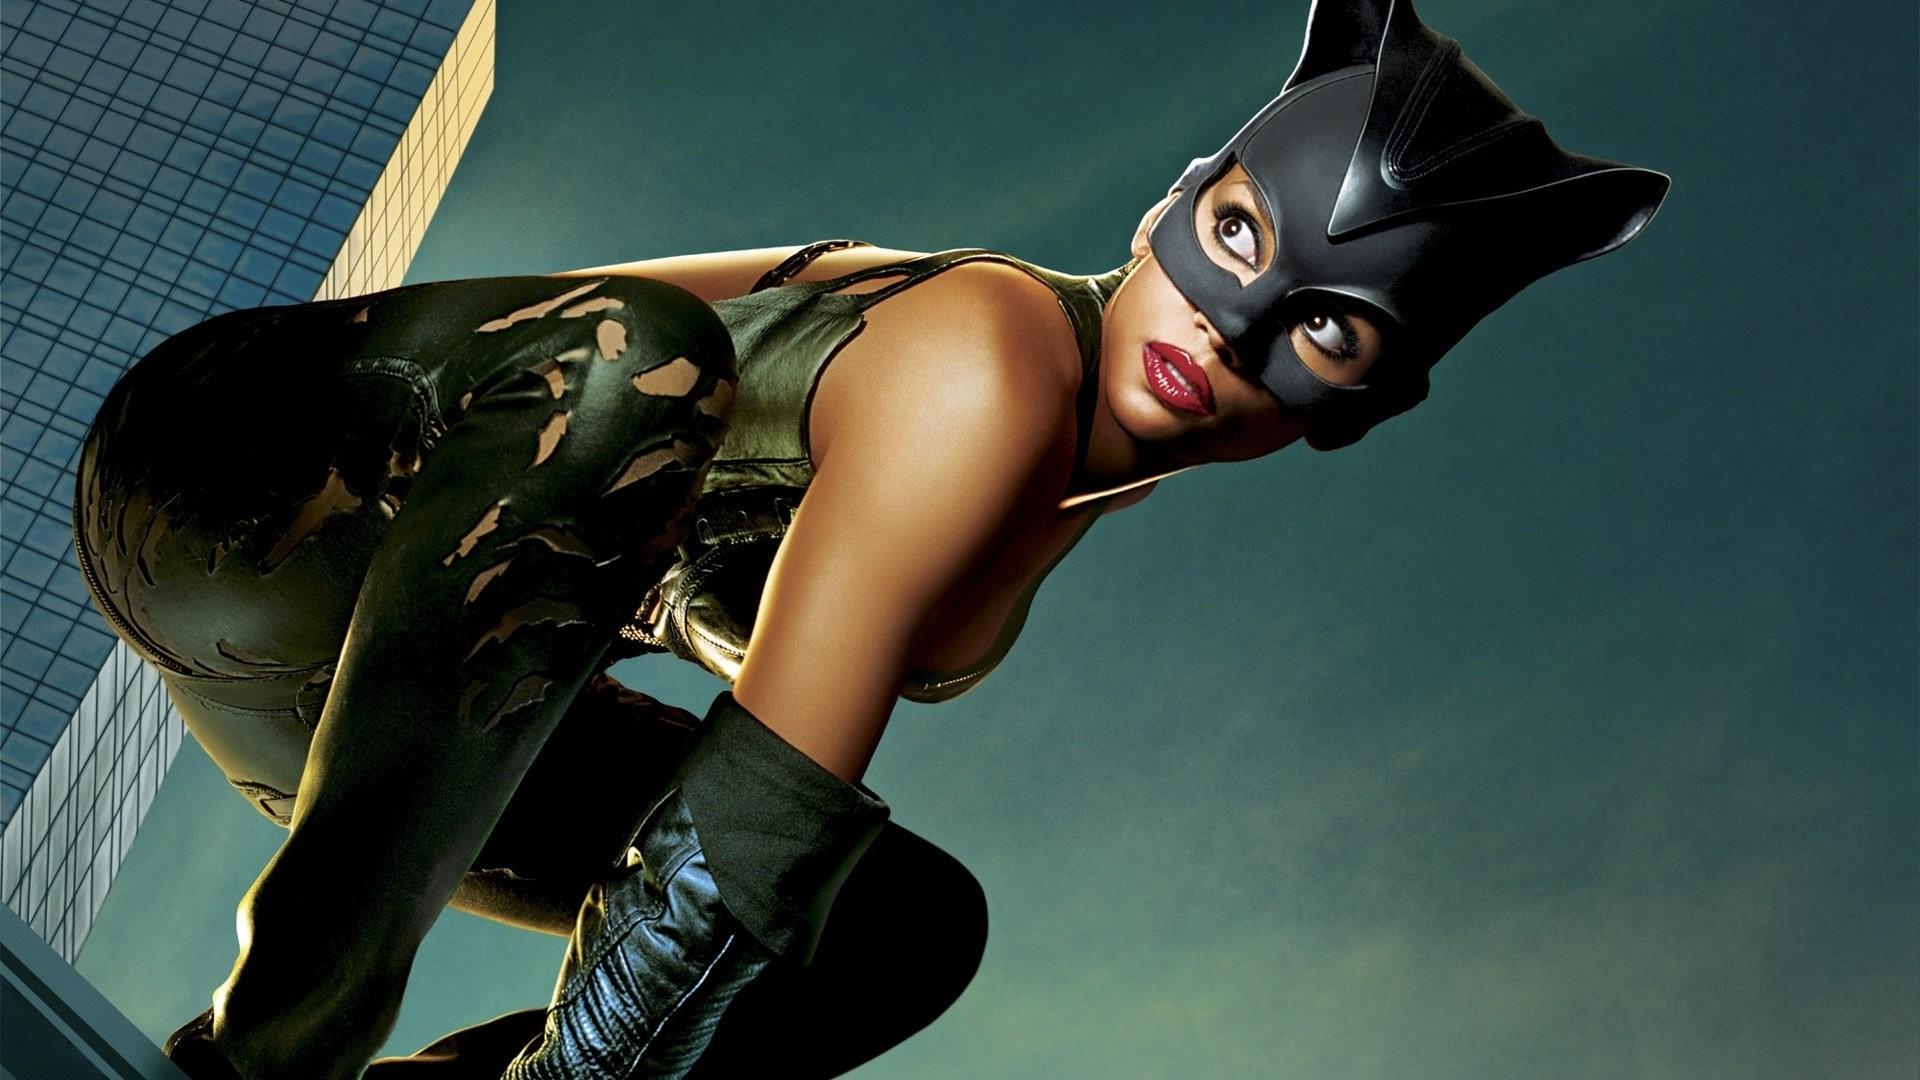 Catwoman Wallpaper Image